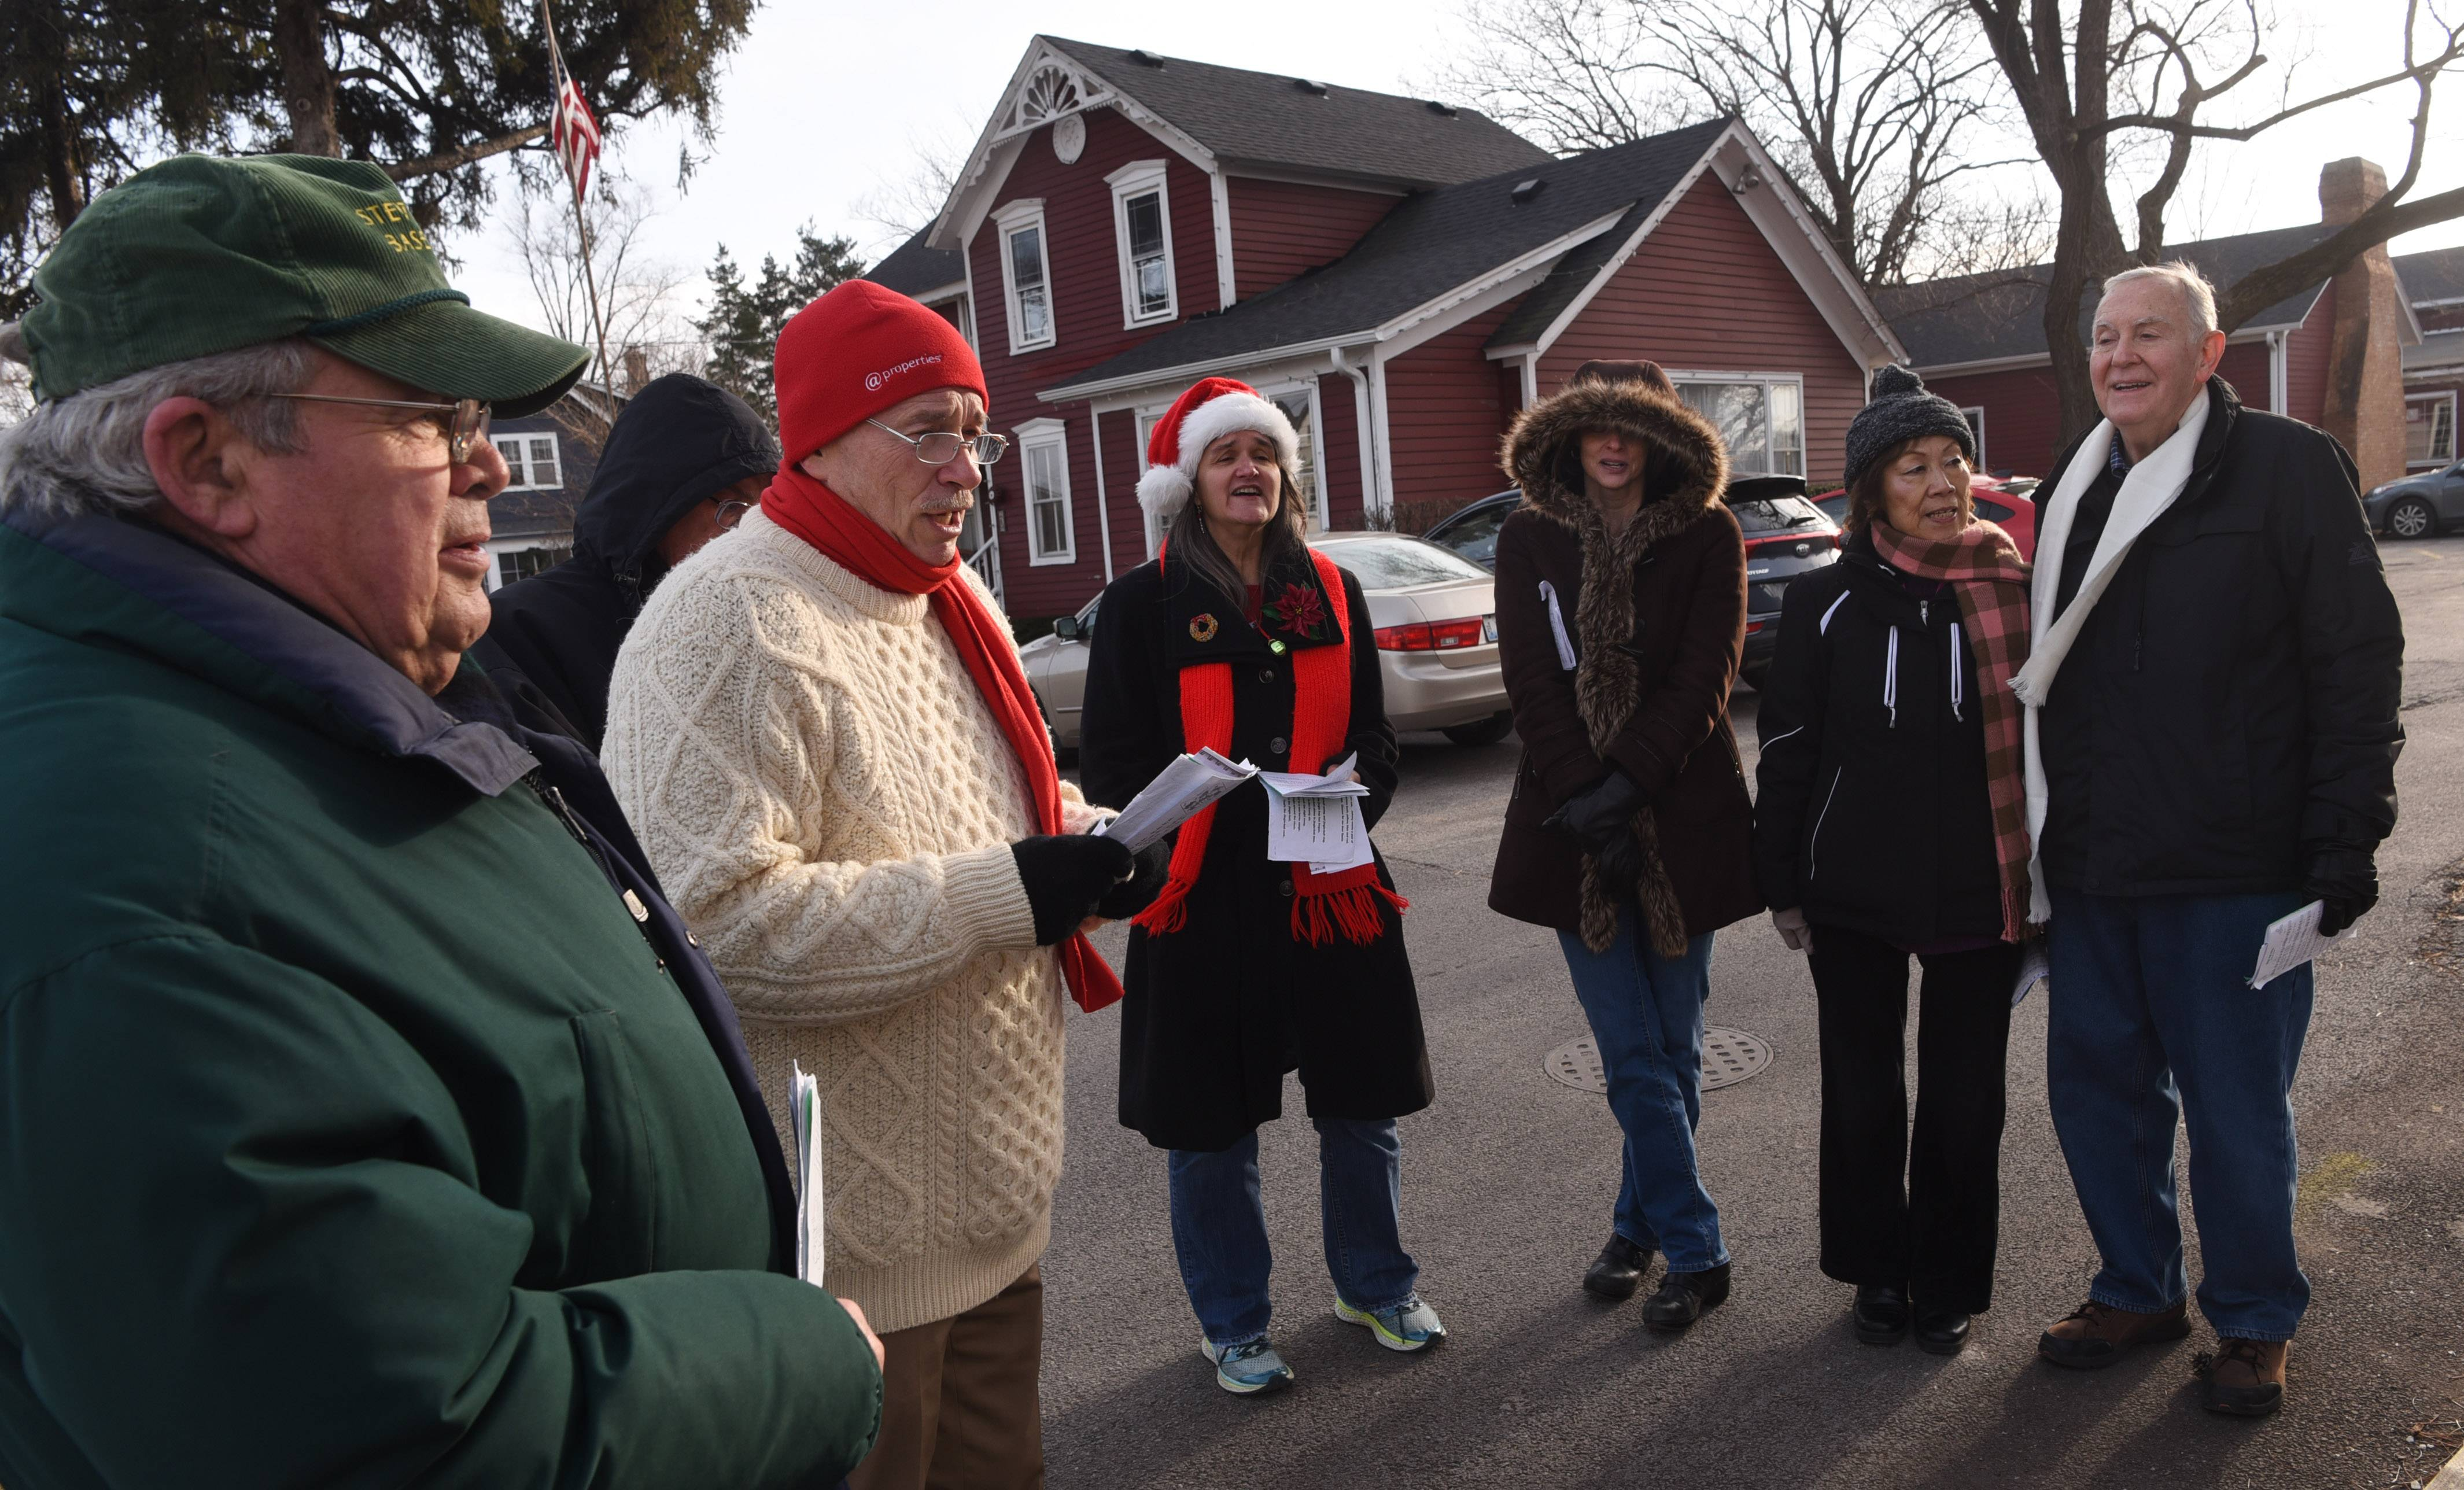 Kermit Lambert, left, of Buffalo Grove, and Tom Clark of Long Grove, second from left, are among a group singing Christmas carols in downtown Long Grove Saturday.